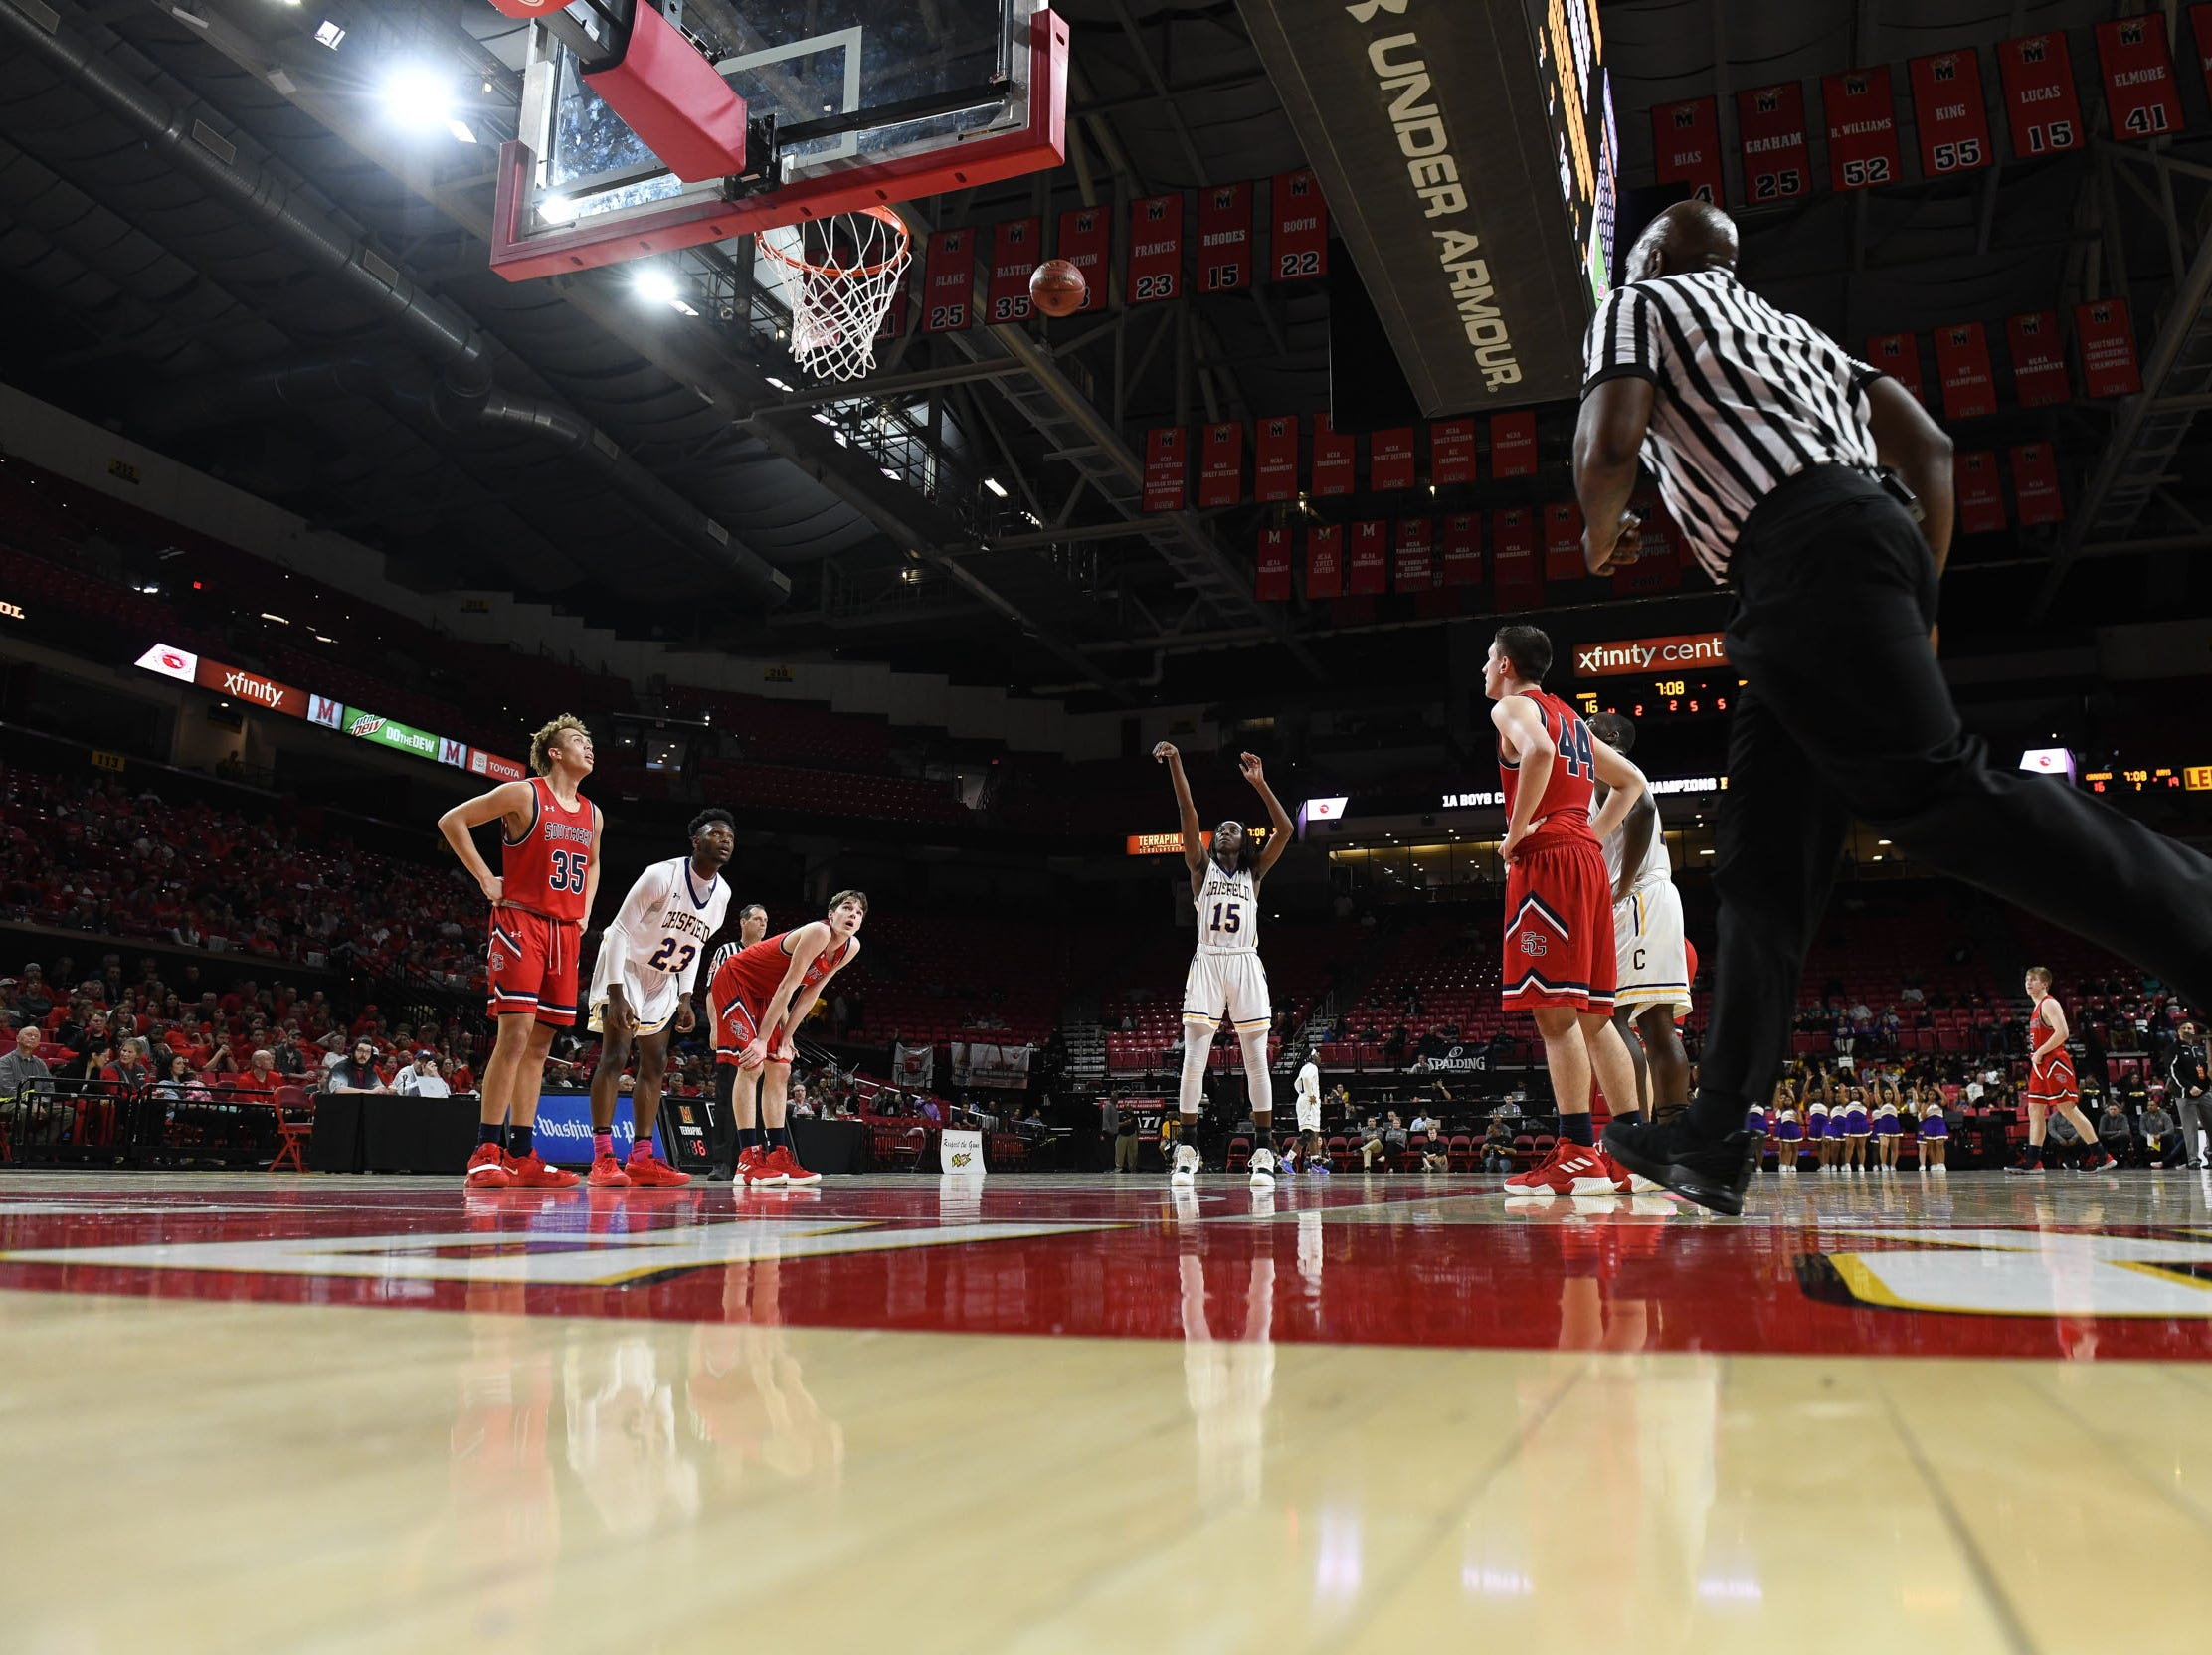 Crisfield's Cortrey Fontaine shoots free throws against Southern-Garrett during the MPSSAA State Championships at the Xfinity Center in College Park, Md. on Friday, March 15, 2019.